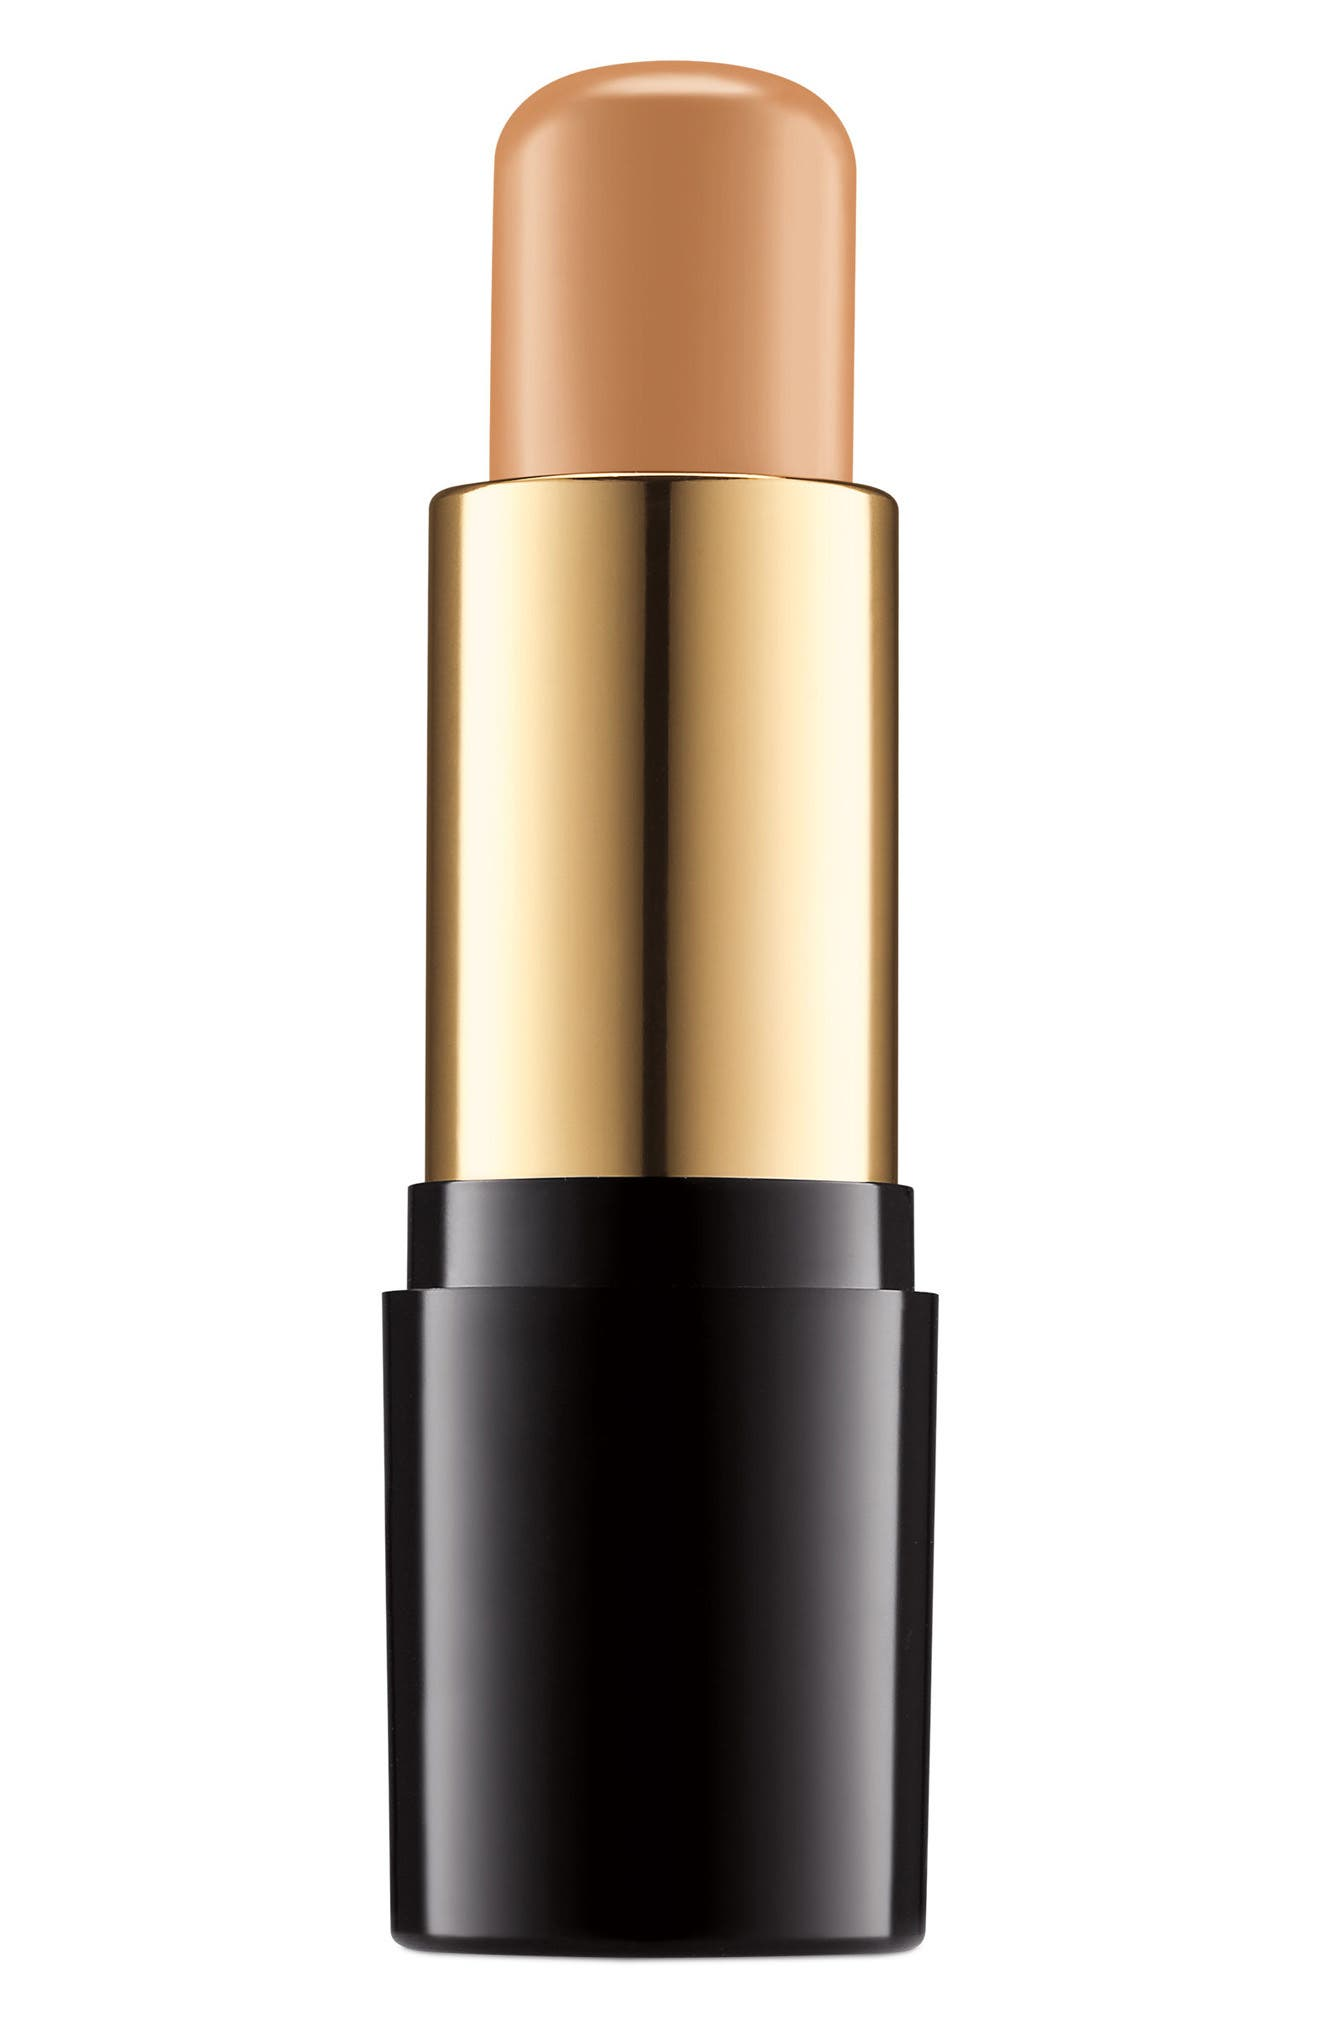 Lancôme Teint Idole Ultra 24H Foundation Stick Broad Spectrum SPF 21